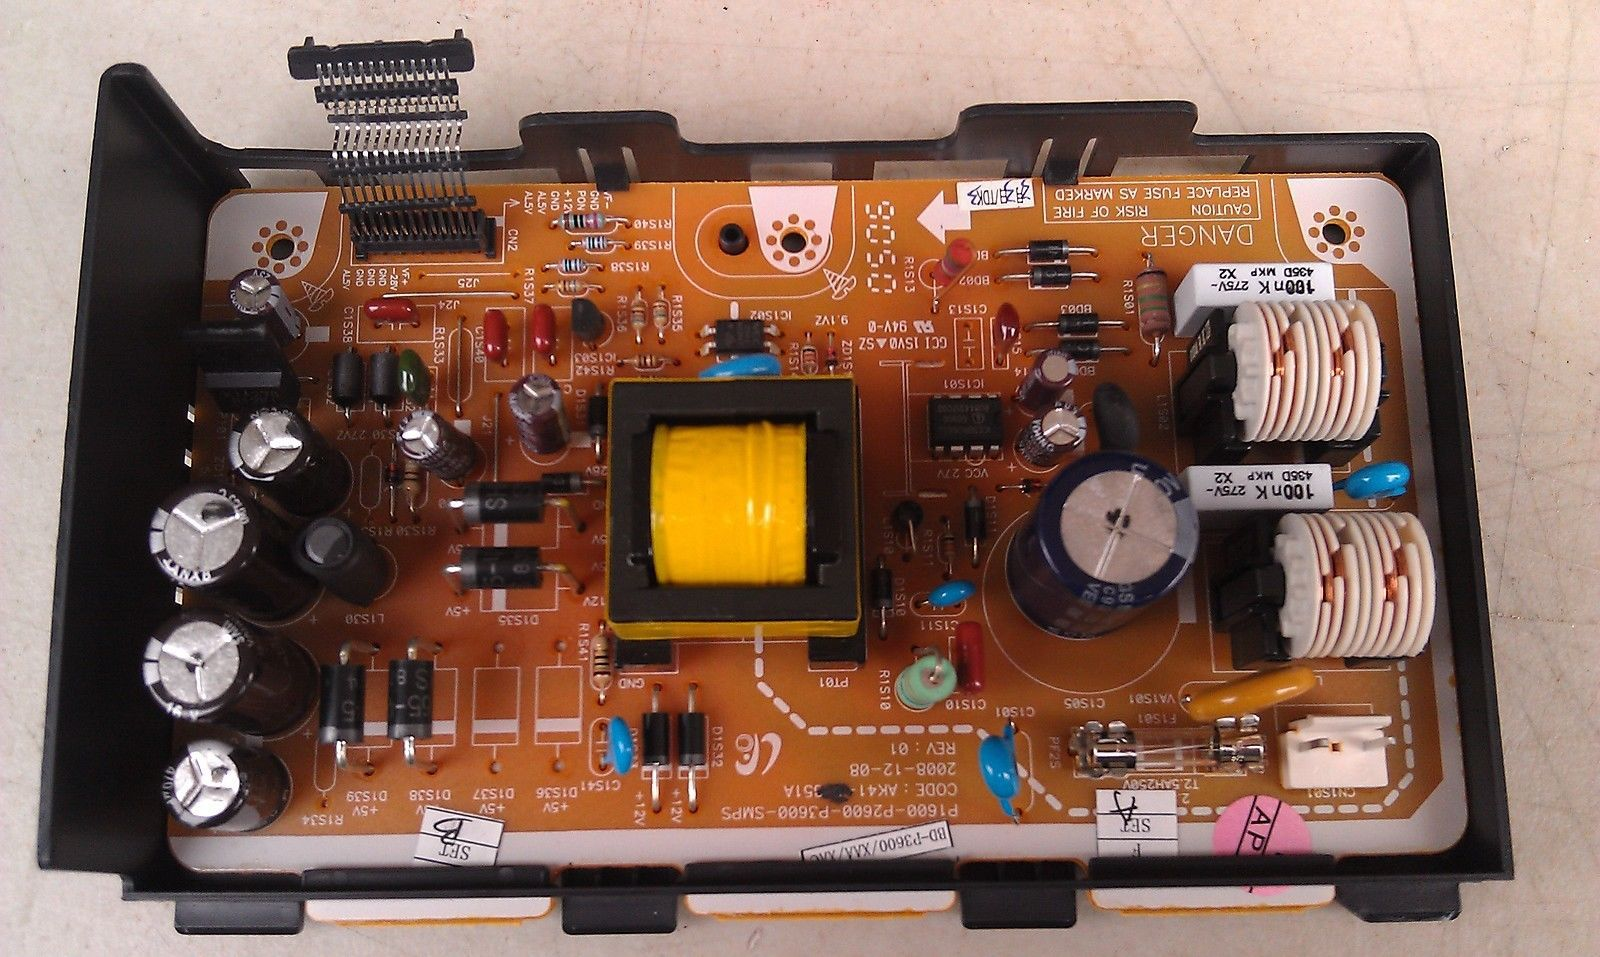 9 M02 Power Board From Samsung Bd P3600 Blu And 50 Similar Items F5100 Bluray Player 57